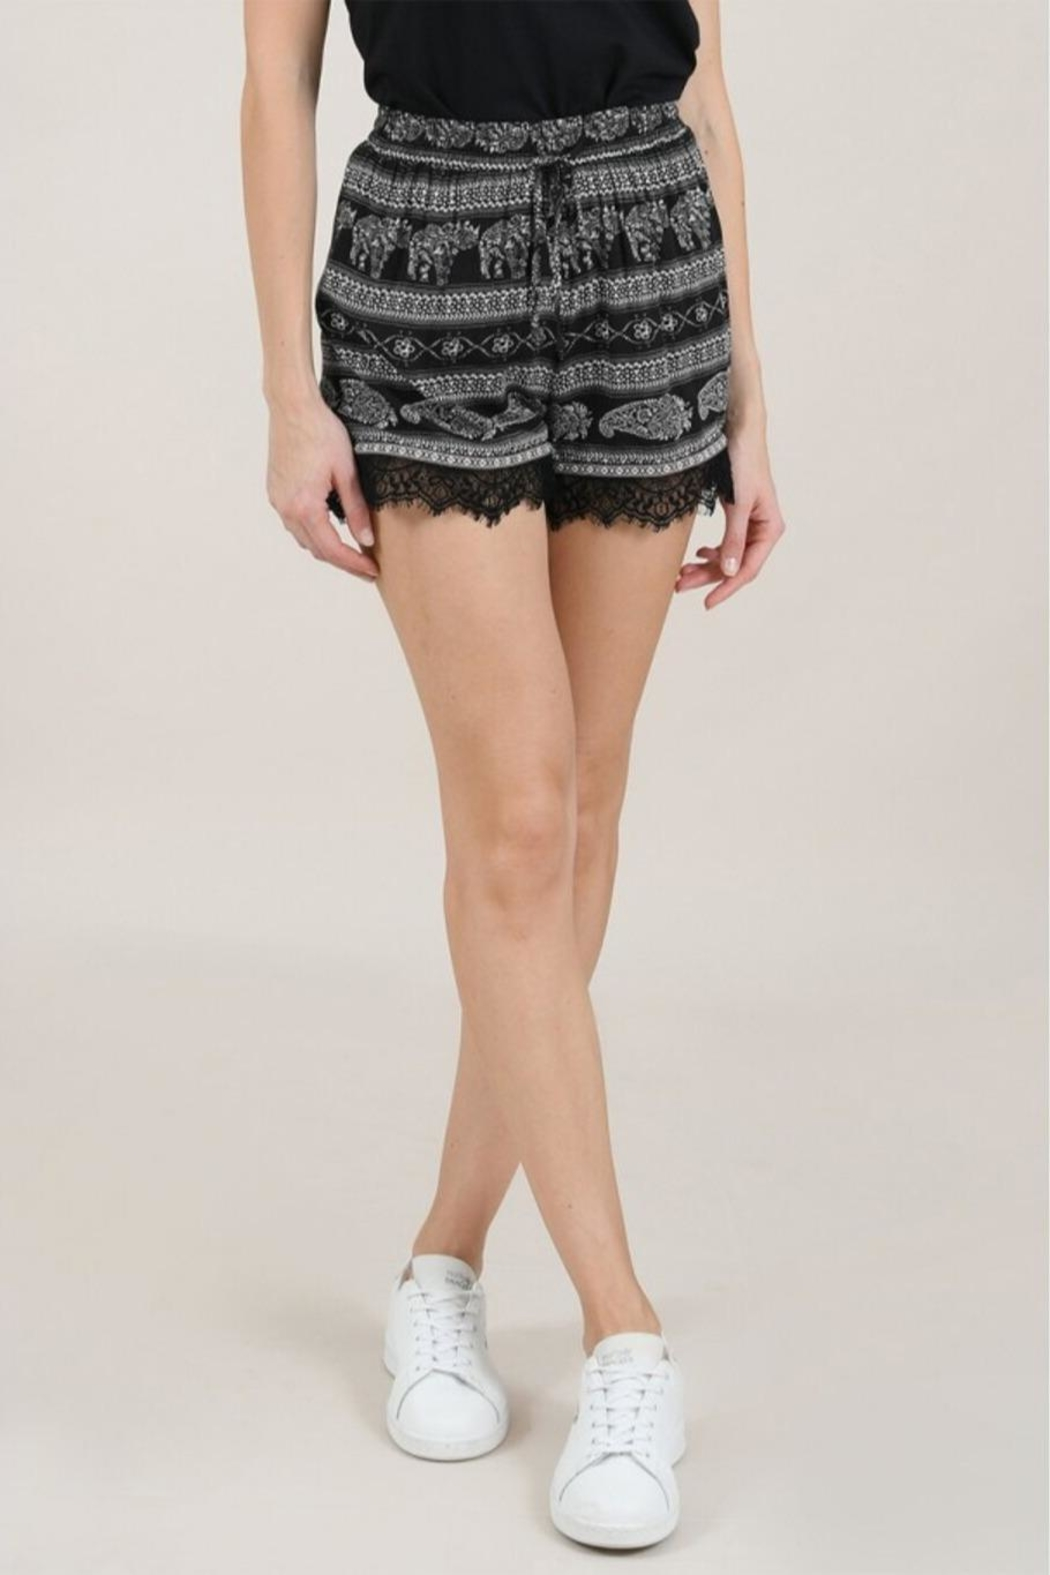 Molly Bracken Printed Lace Shorts - Front Cropped Image